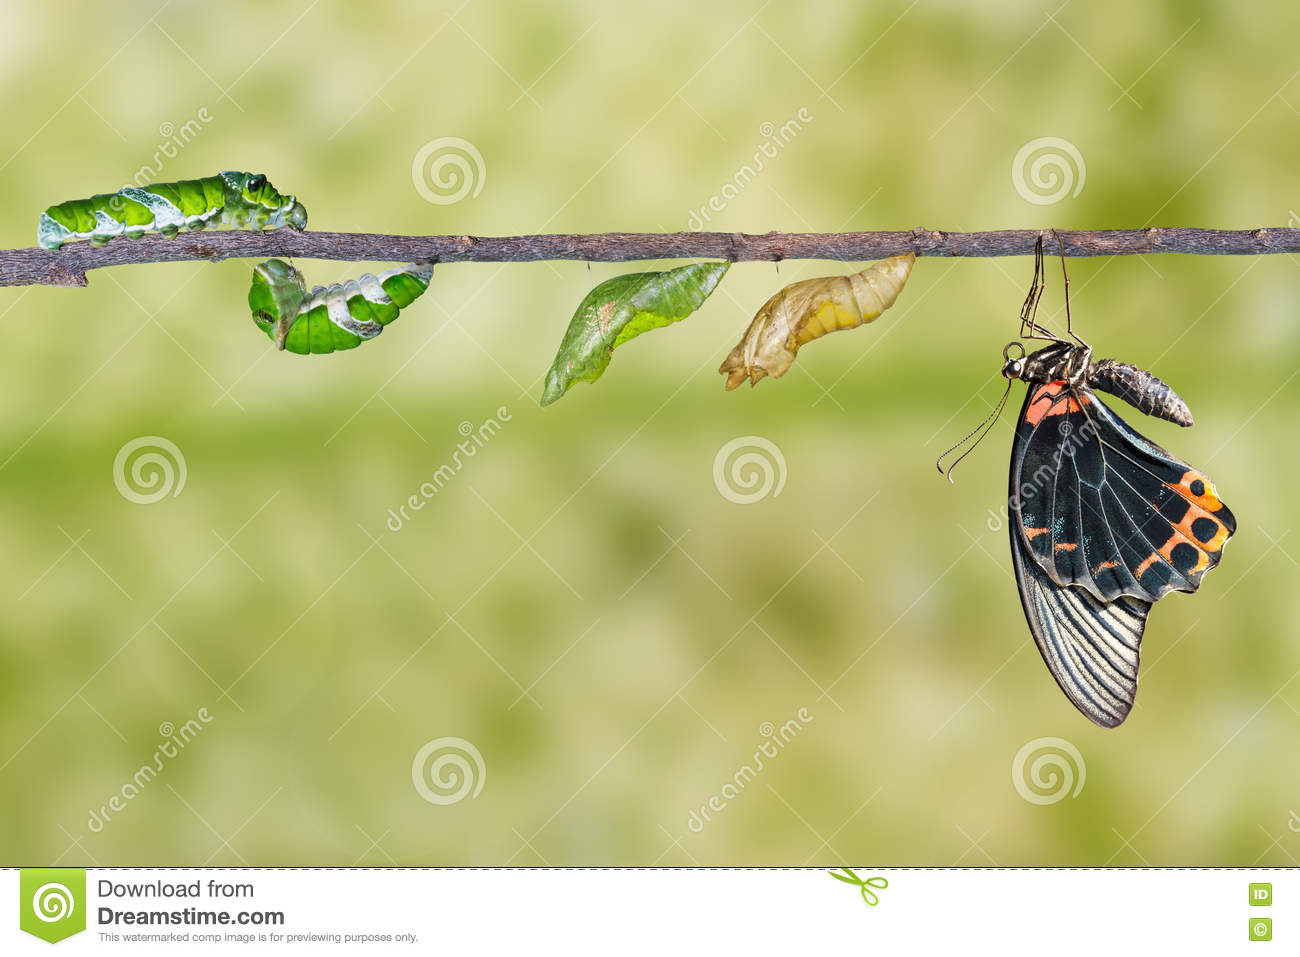 Life cycle of male great mormon butterfly from caterpillar